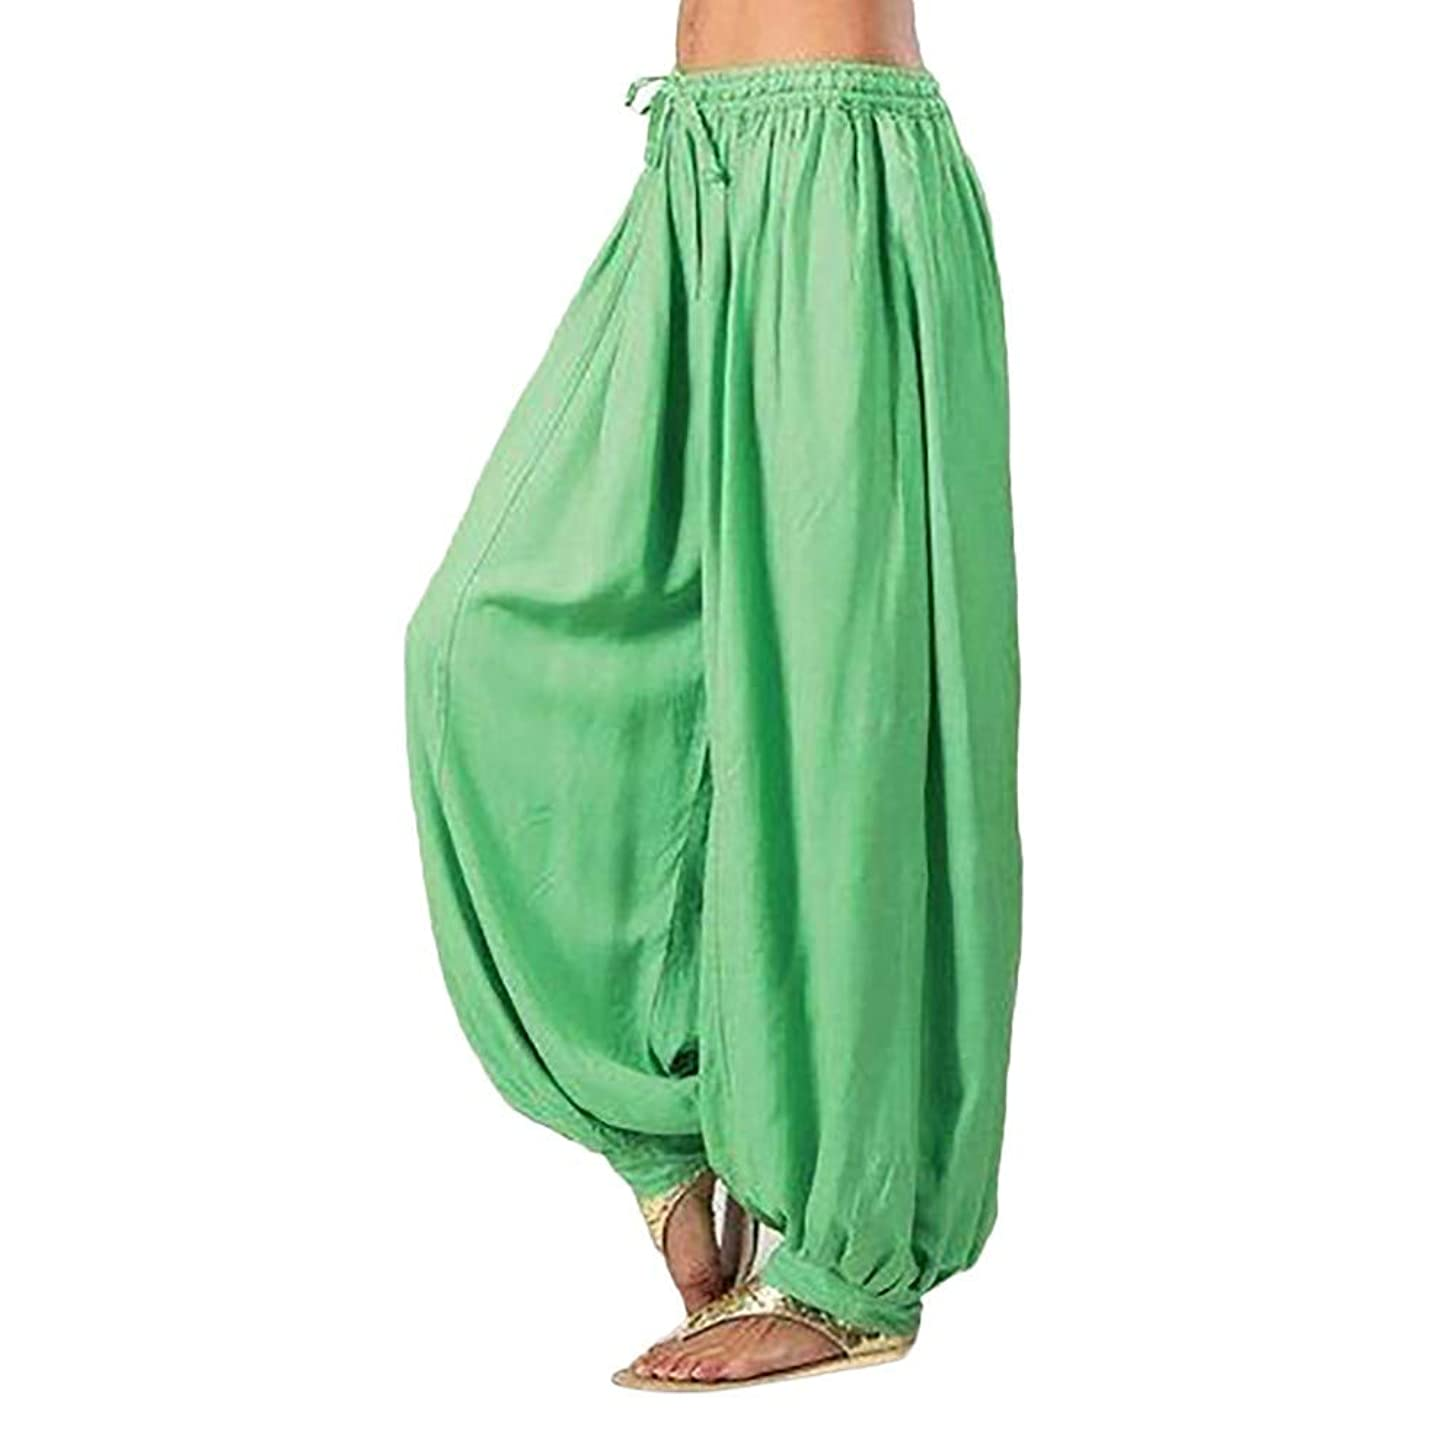 F_topbu Women's Casual Harem Pants Cotton Linen Baggy Pants with Elastic Waist Pleated Capri Trousers with Pockets